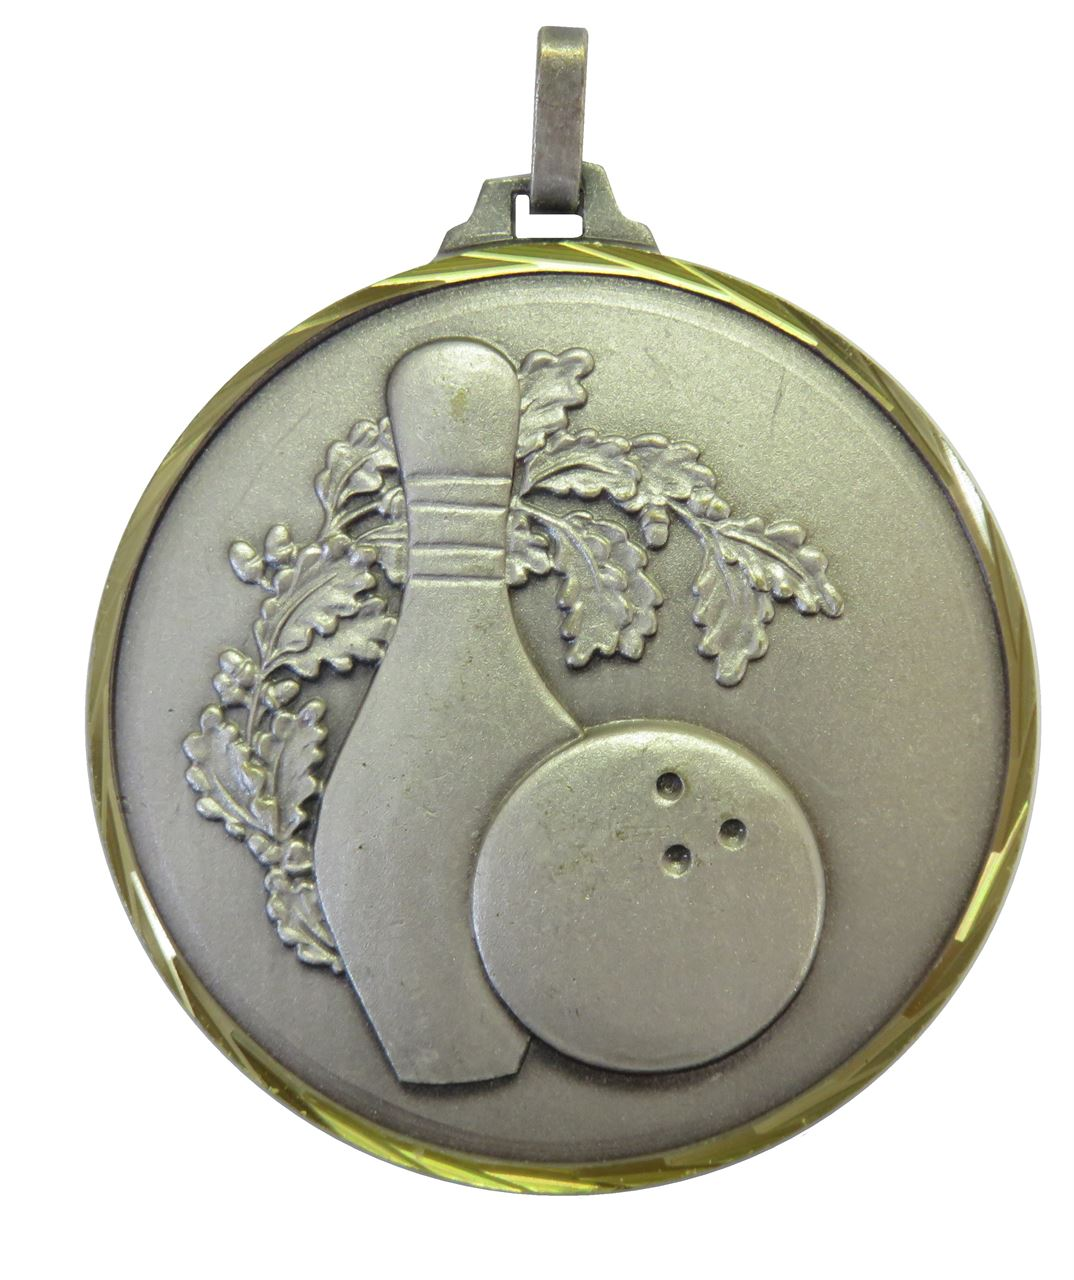 Silver Faceted Ten Pin Bowling Medal (size: 42mm and 52mm) - 366F